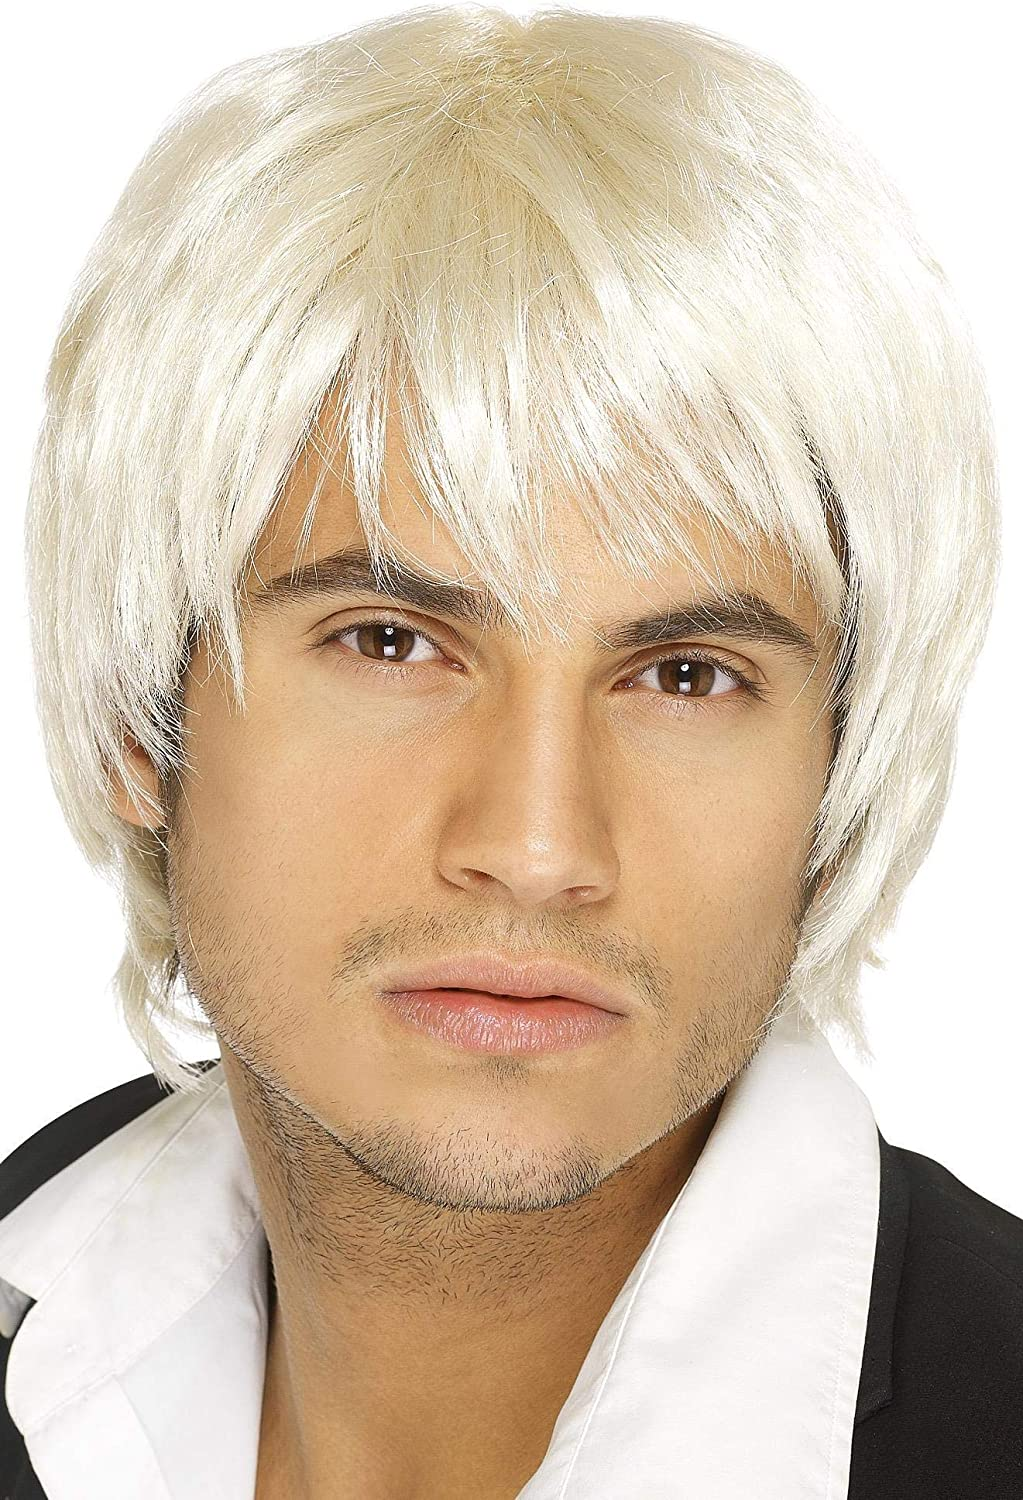 Smiffys Mens Short Blonde Wig One Size 5020570420683 Boy Band Wig